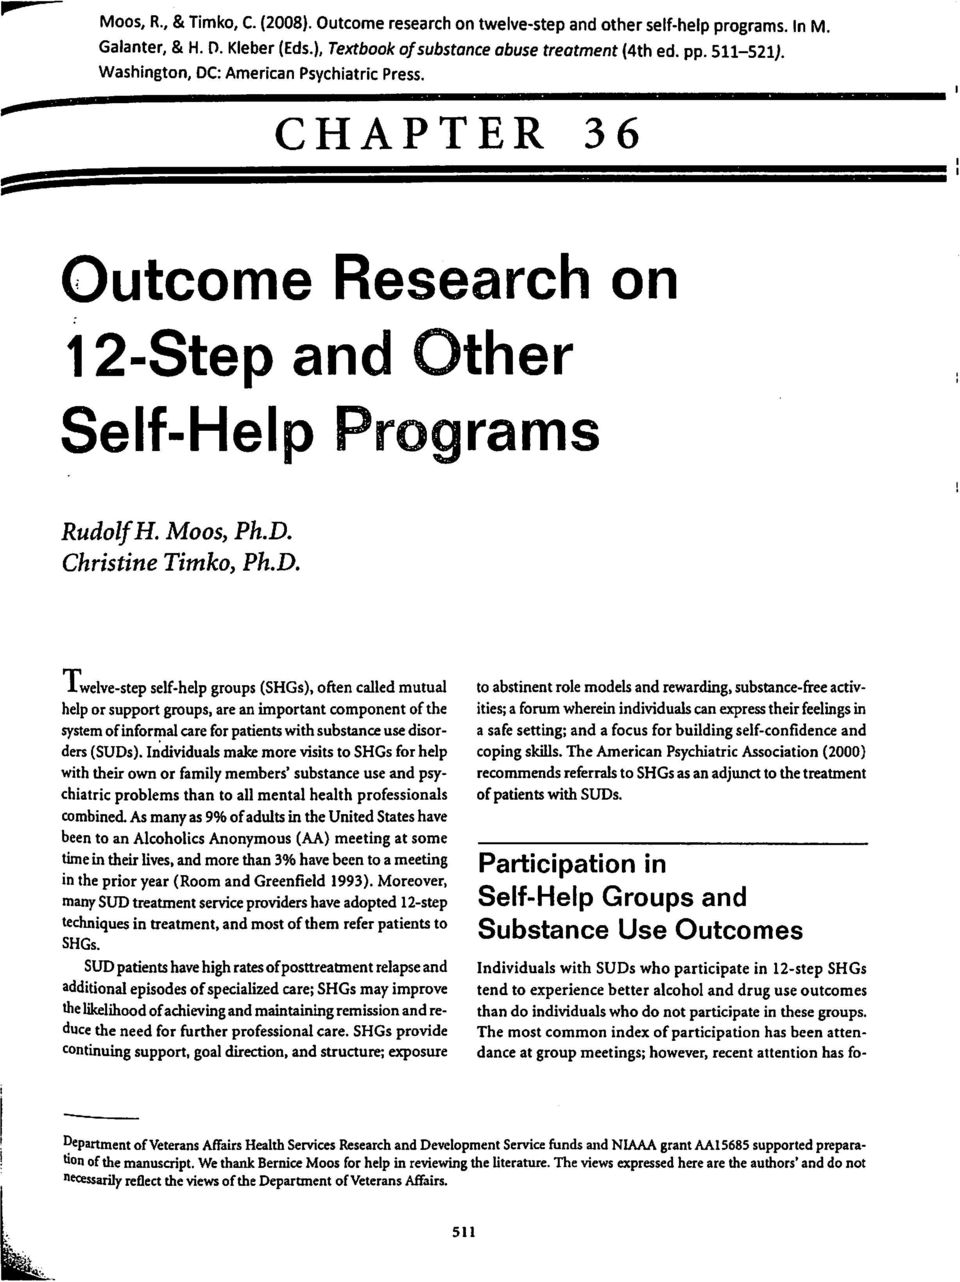 : American Psychiatric Press. CHAPTER 36 Outcome Research on 12-Step and Other Self-Help Programs RudolfH. Moos, Ph.D.